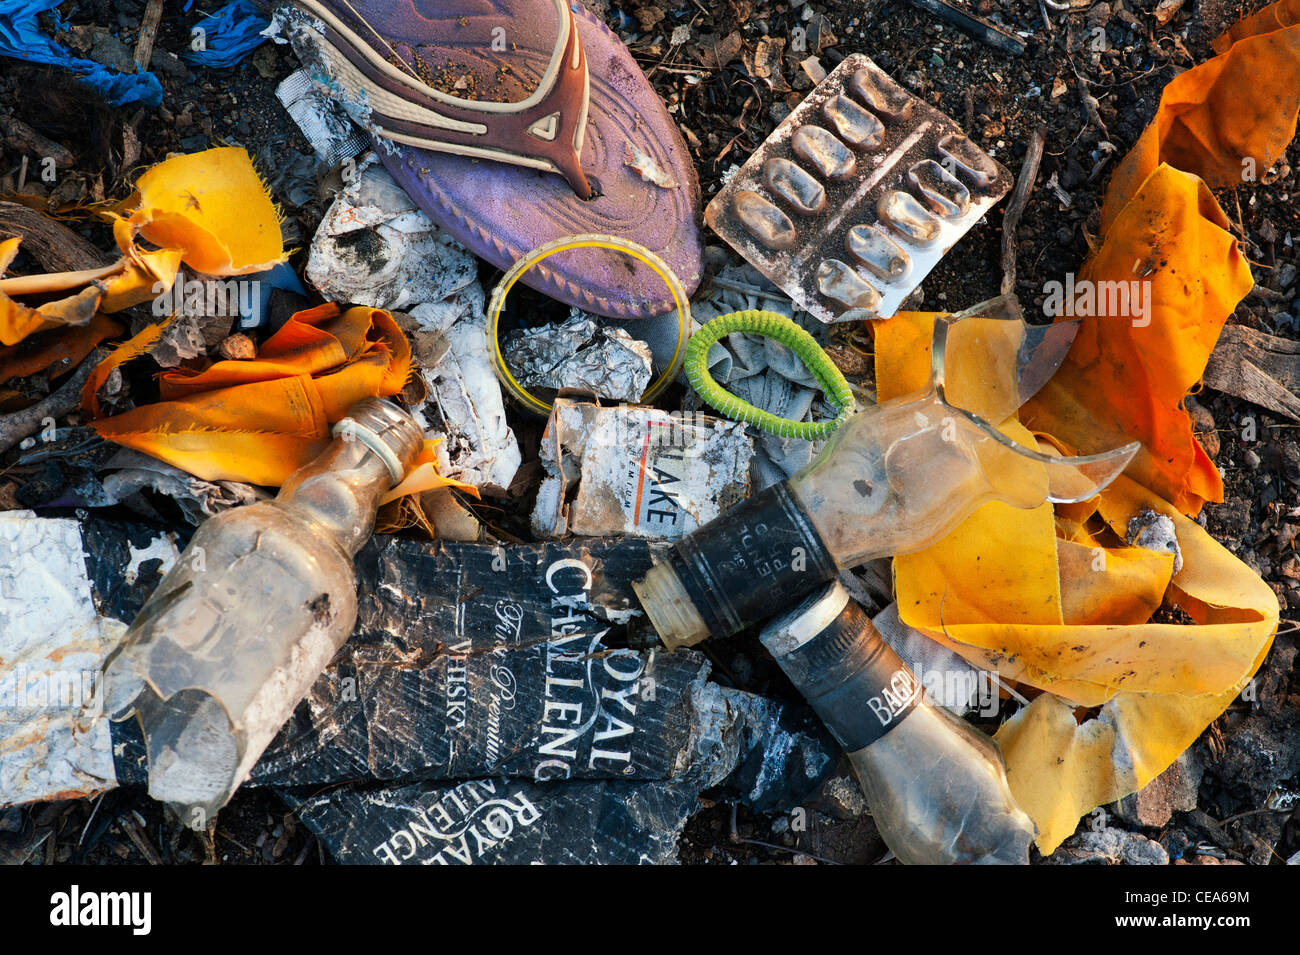 Discarded household waste in the Indian countryside, representing the concept of Indian family social issues. Andhra Pradesh, India Stock Photo